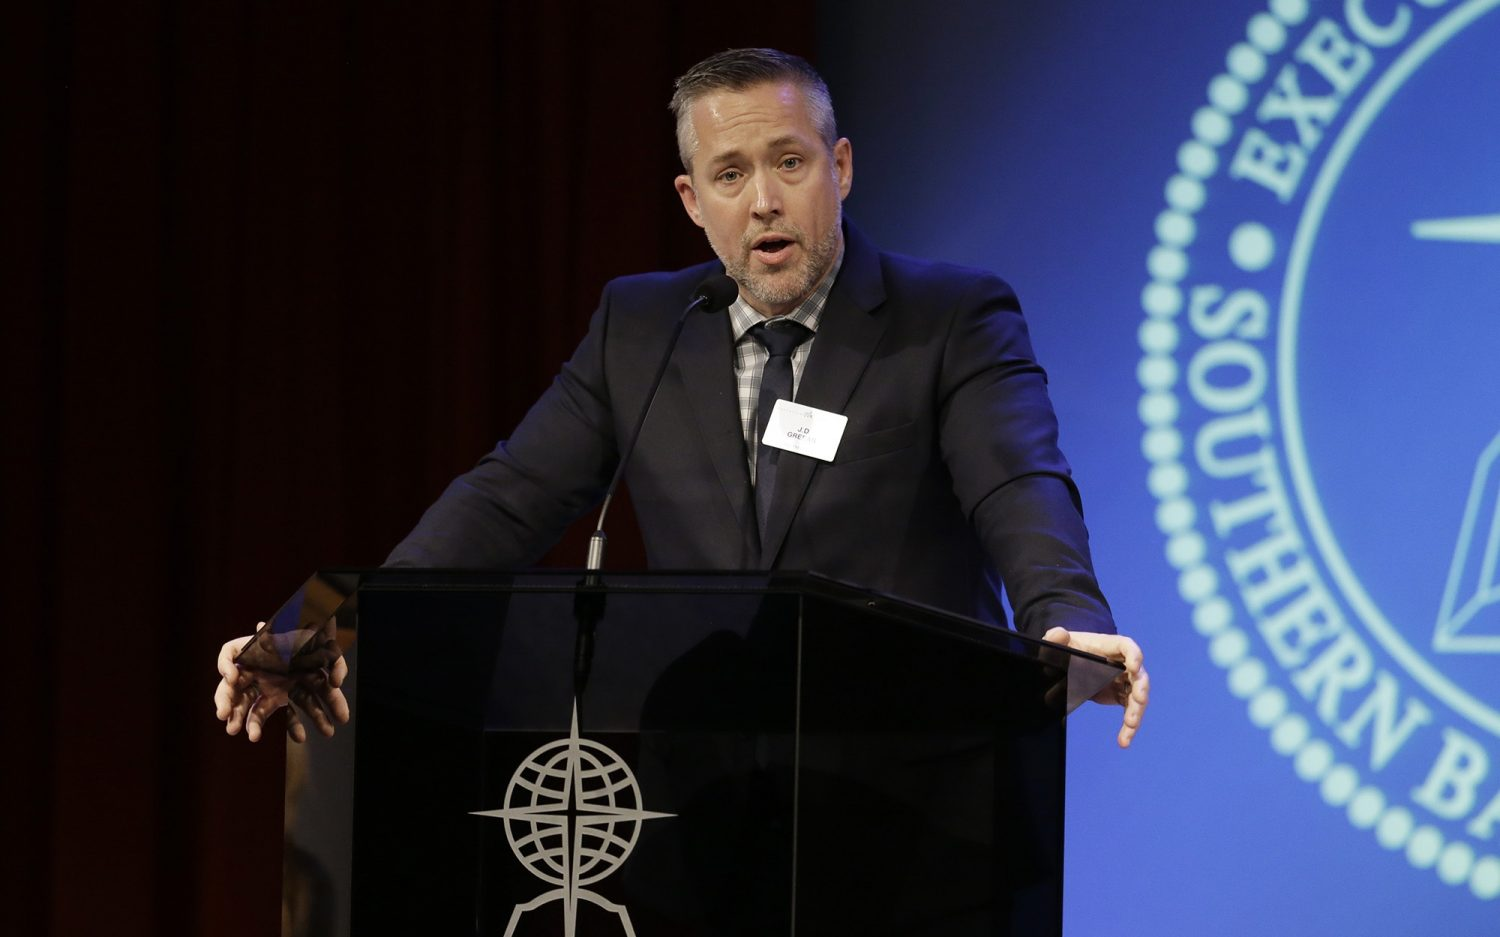 Southern Baptists address abuse in the church